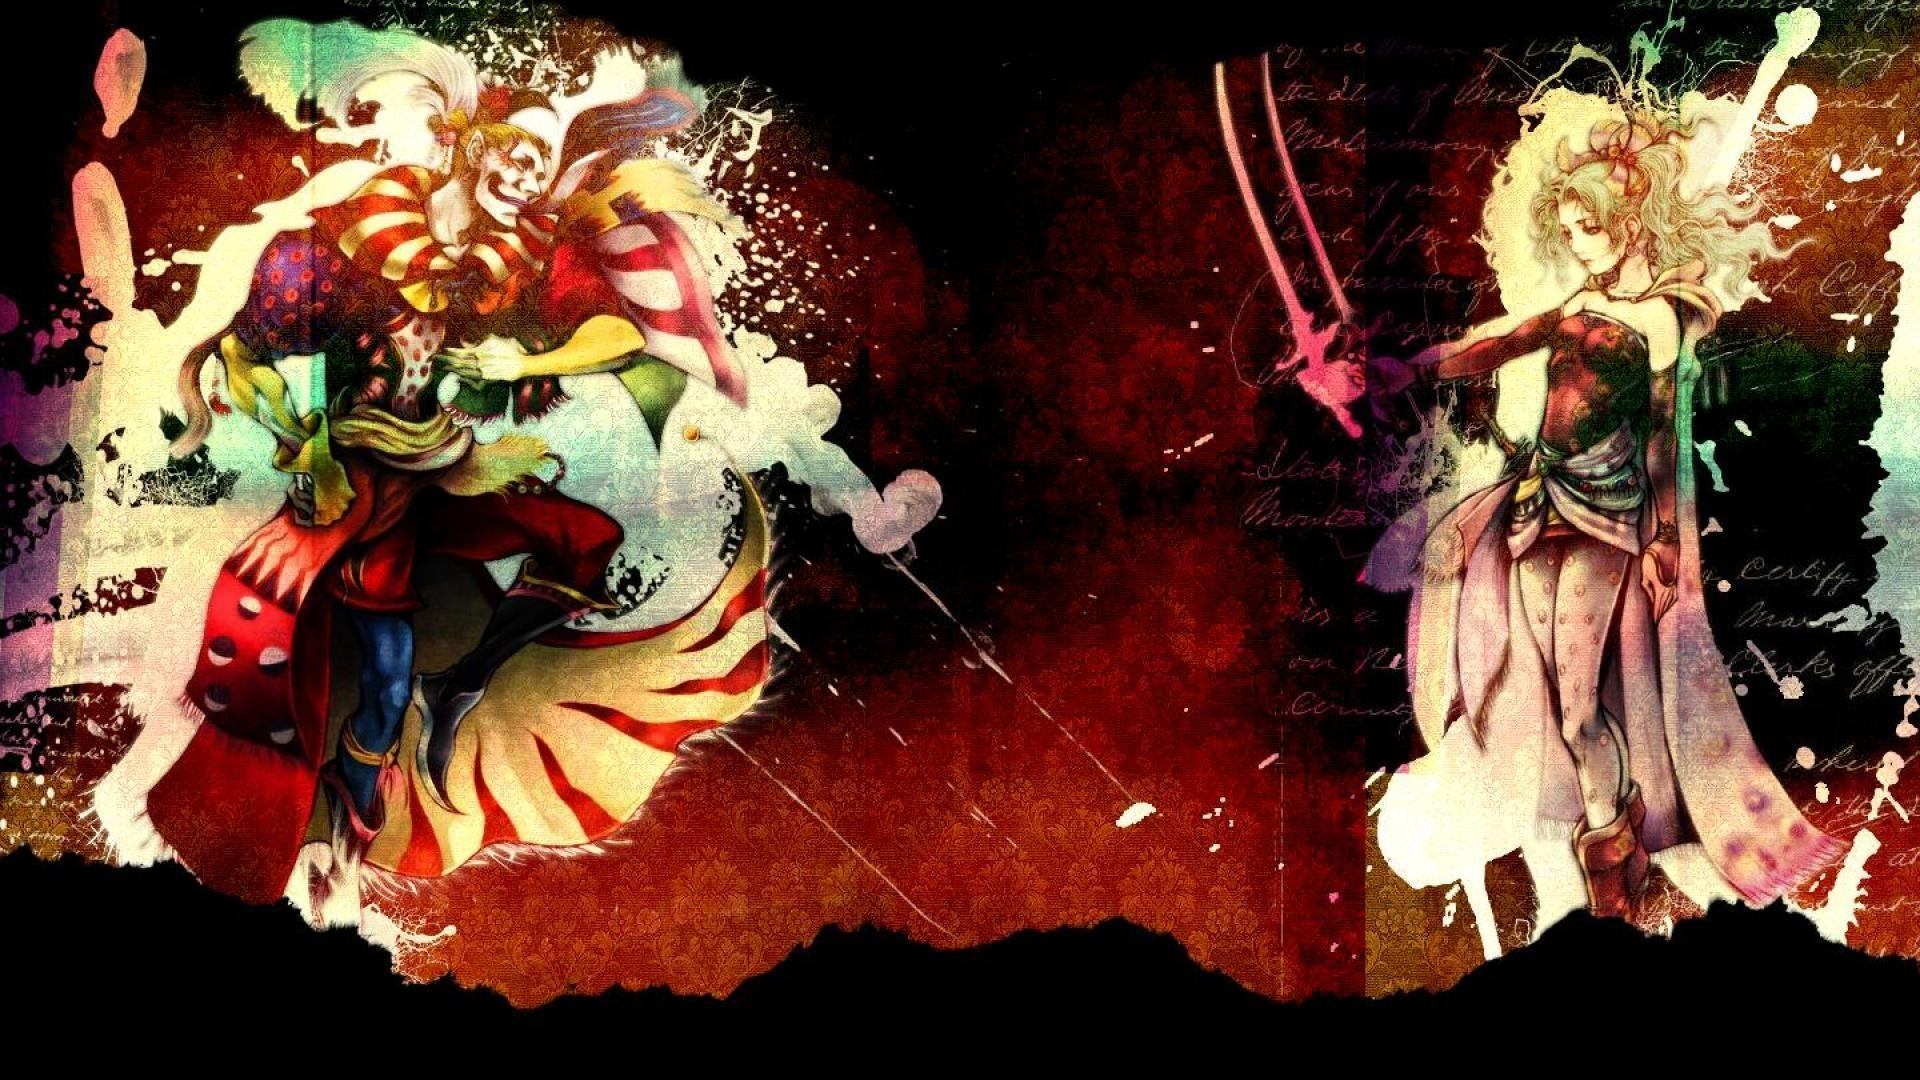 final fantasy vi wallpapers - wallpaper cave